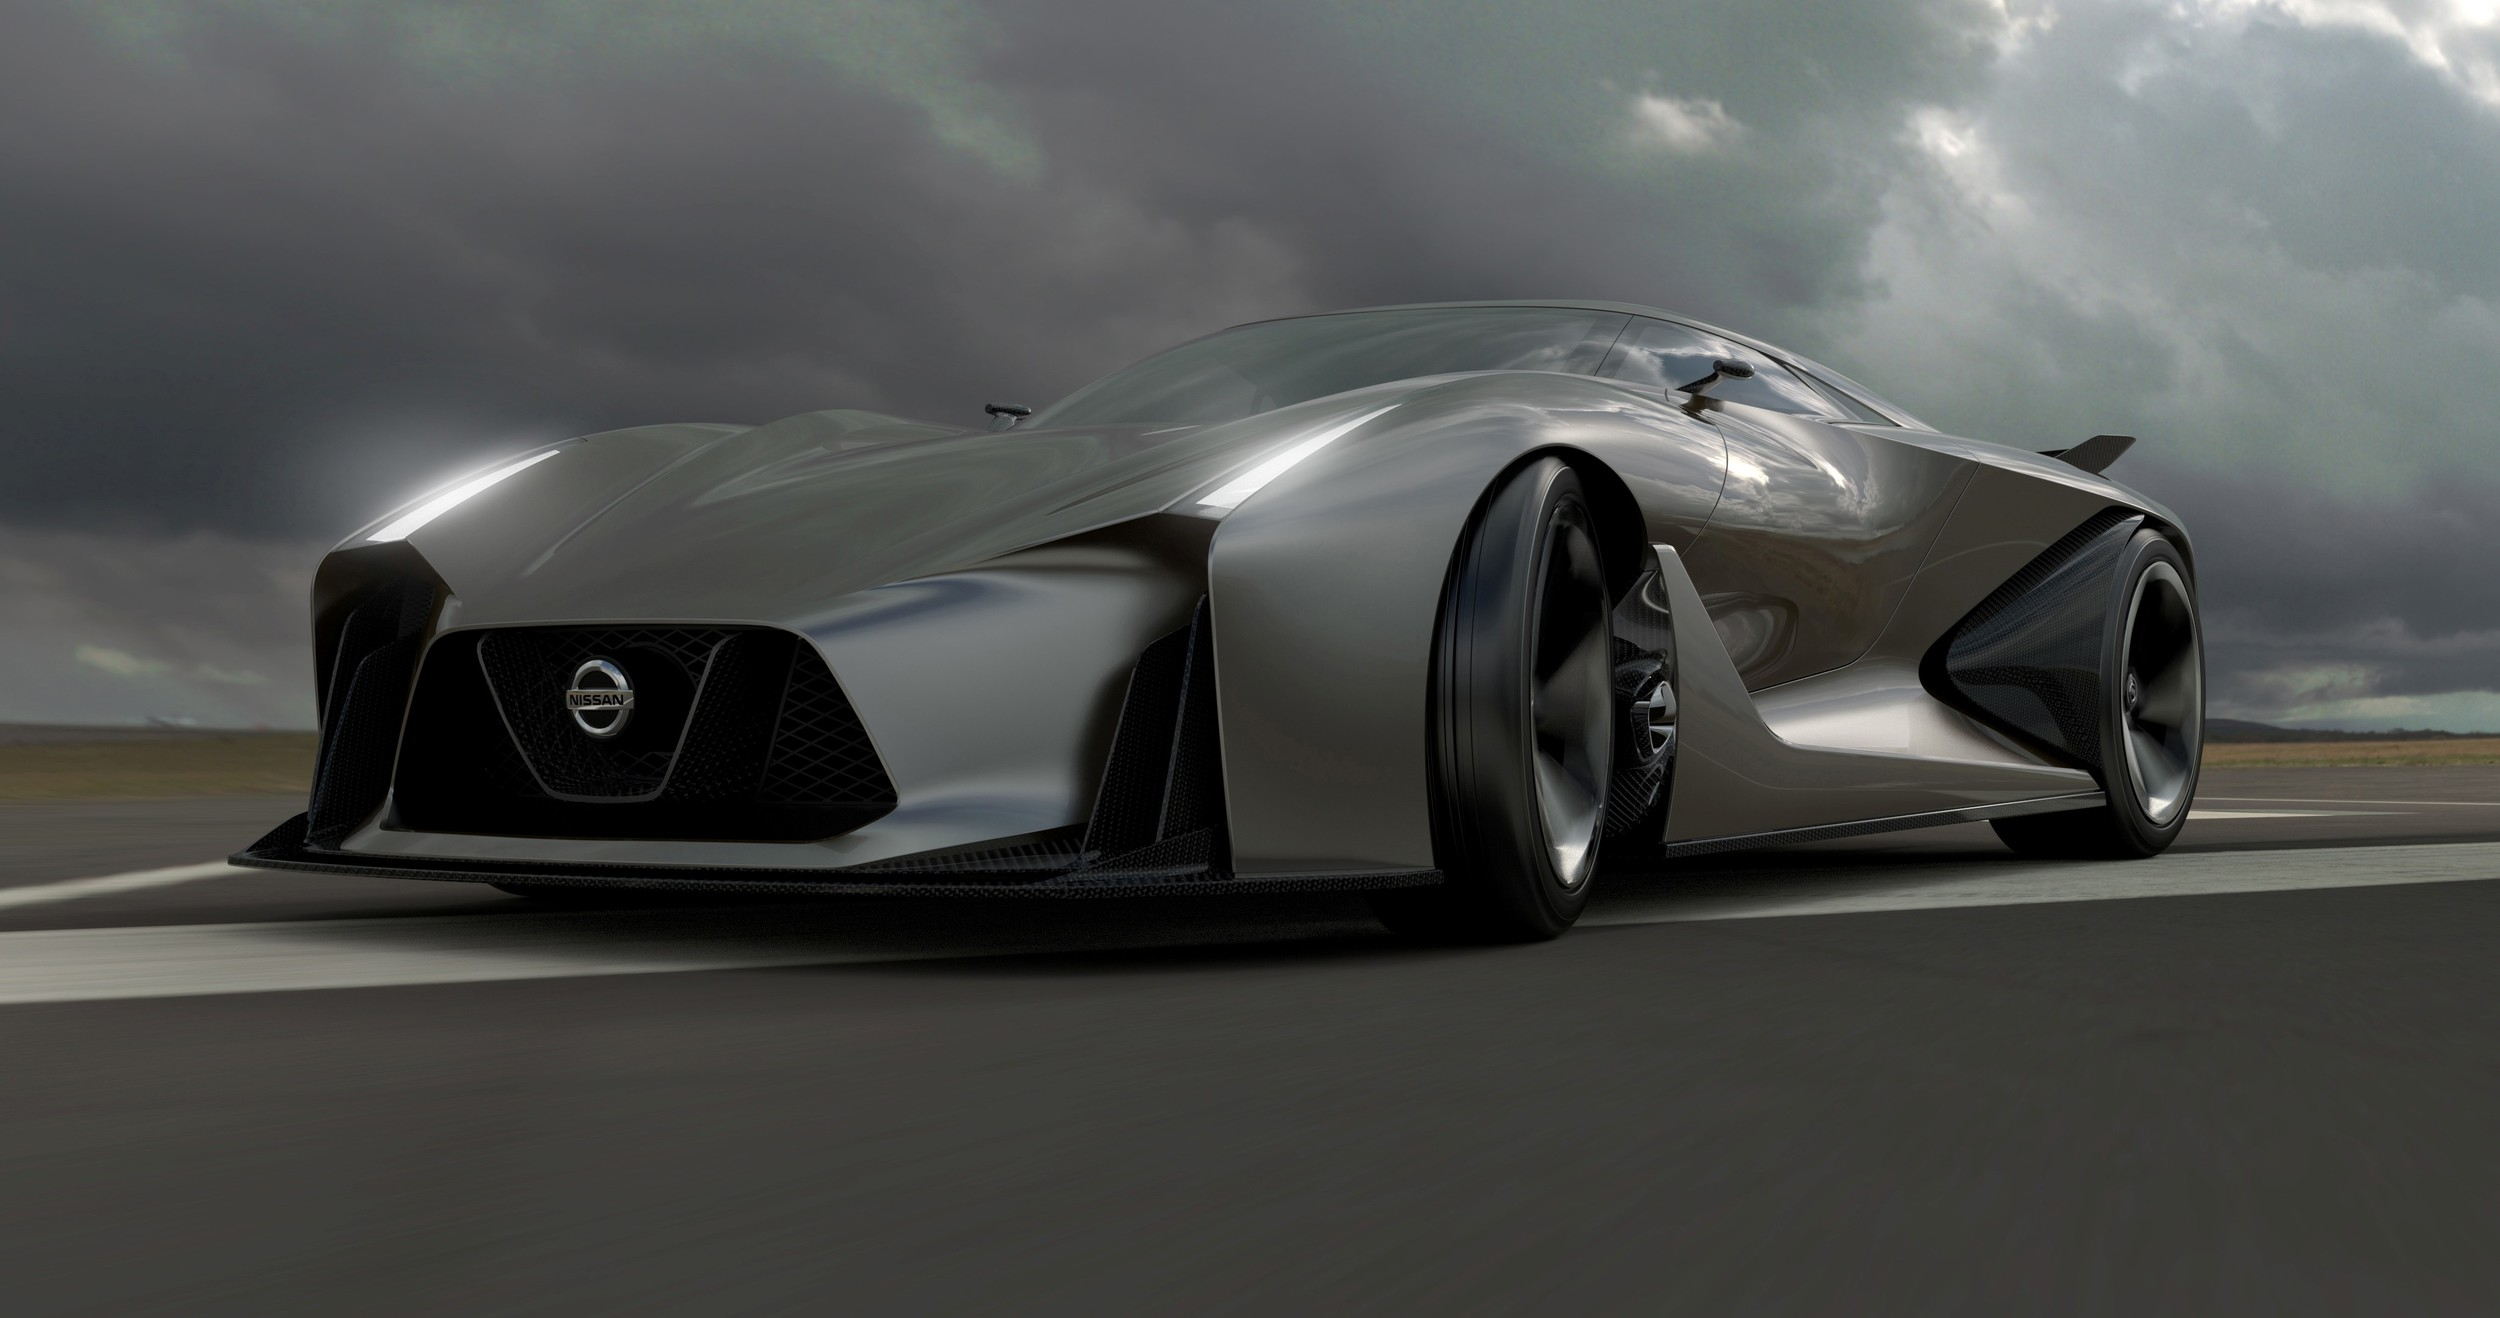 2014_Nissan_Concept_2020_Vision_Gran_Turismo_001_4755.jpg